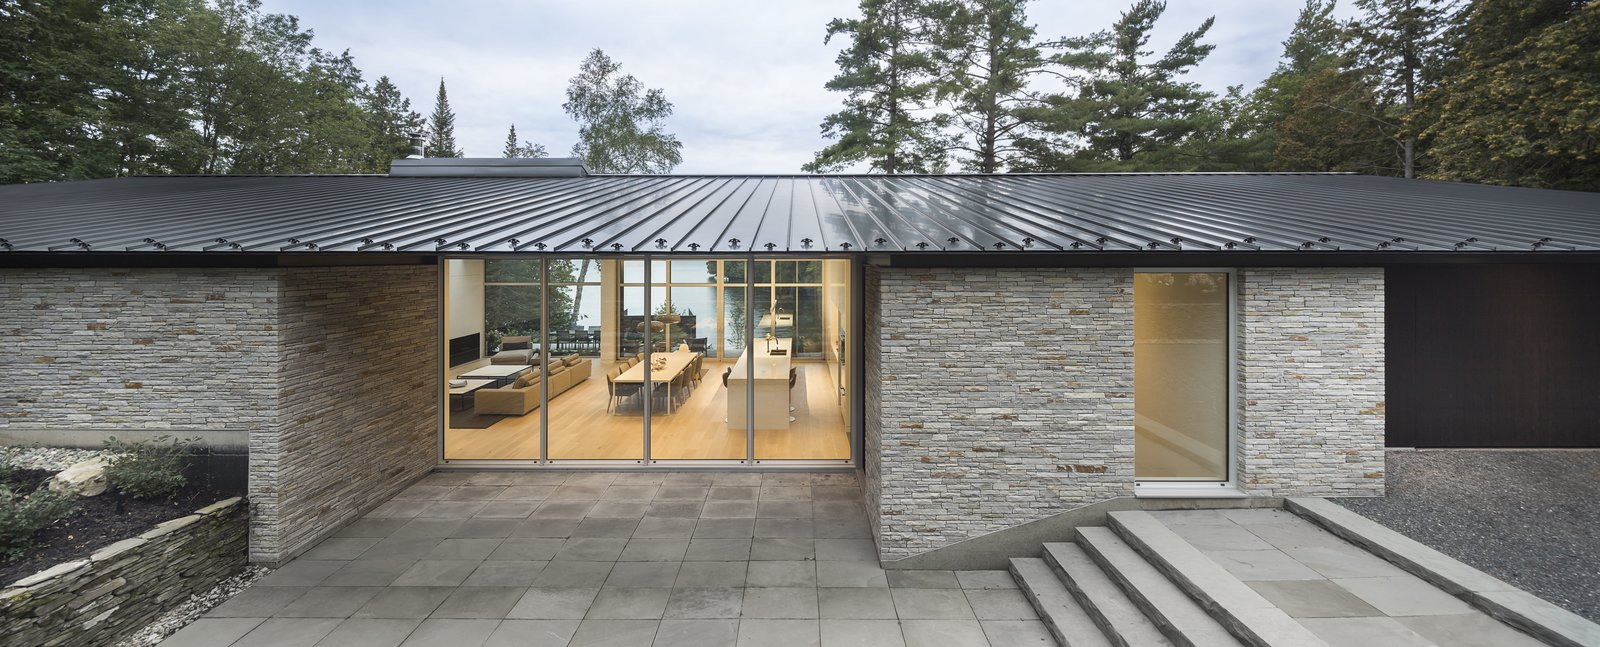 Outdoor, Stone Patio, Porch, Deck, Decomposed Granite Patio, Porch, Deck, Trees, Large Patio, Porch, Deck, and Stone Fences, Wall Massive volumes of dry stacked, locally supplied granite supports the roof.  Best Photos from A Lakeside Retreat in Quebec Looks Sharp With a Blade-Like Roof